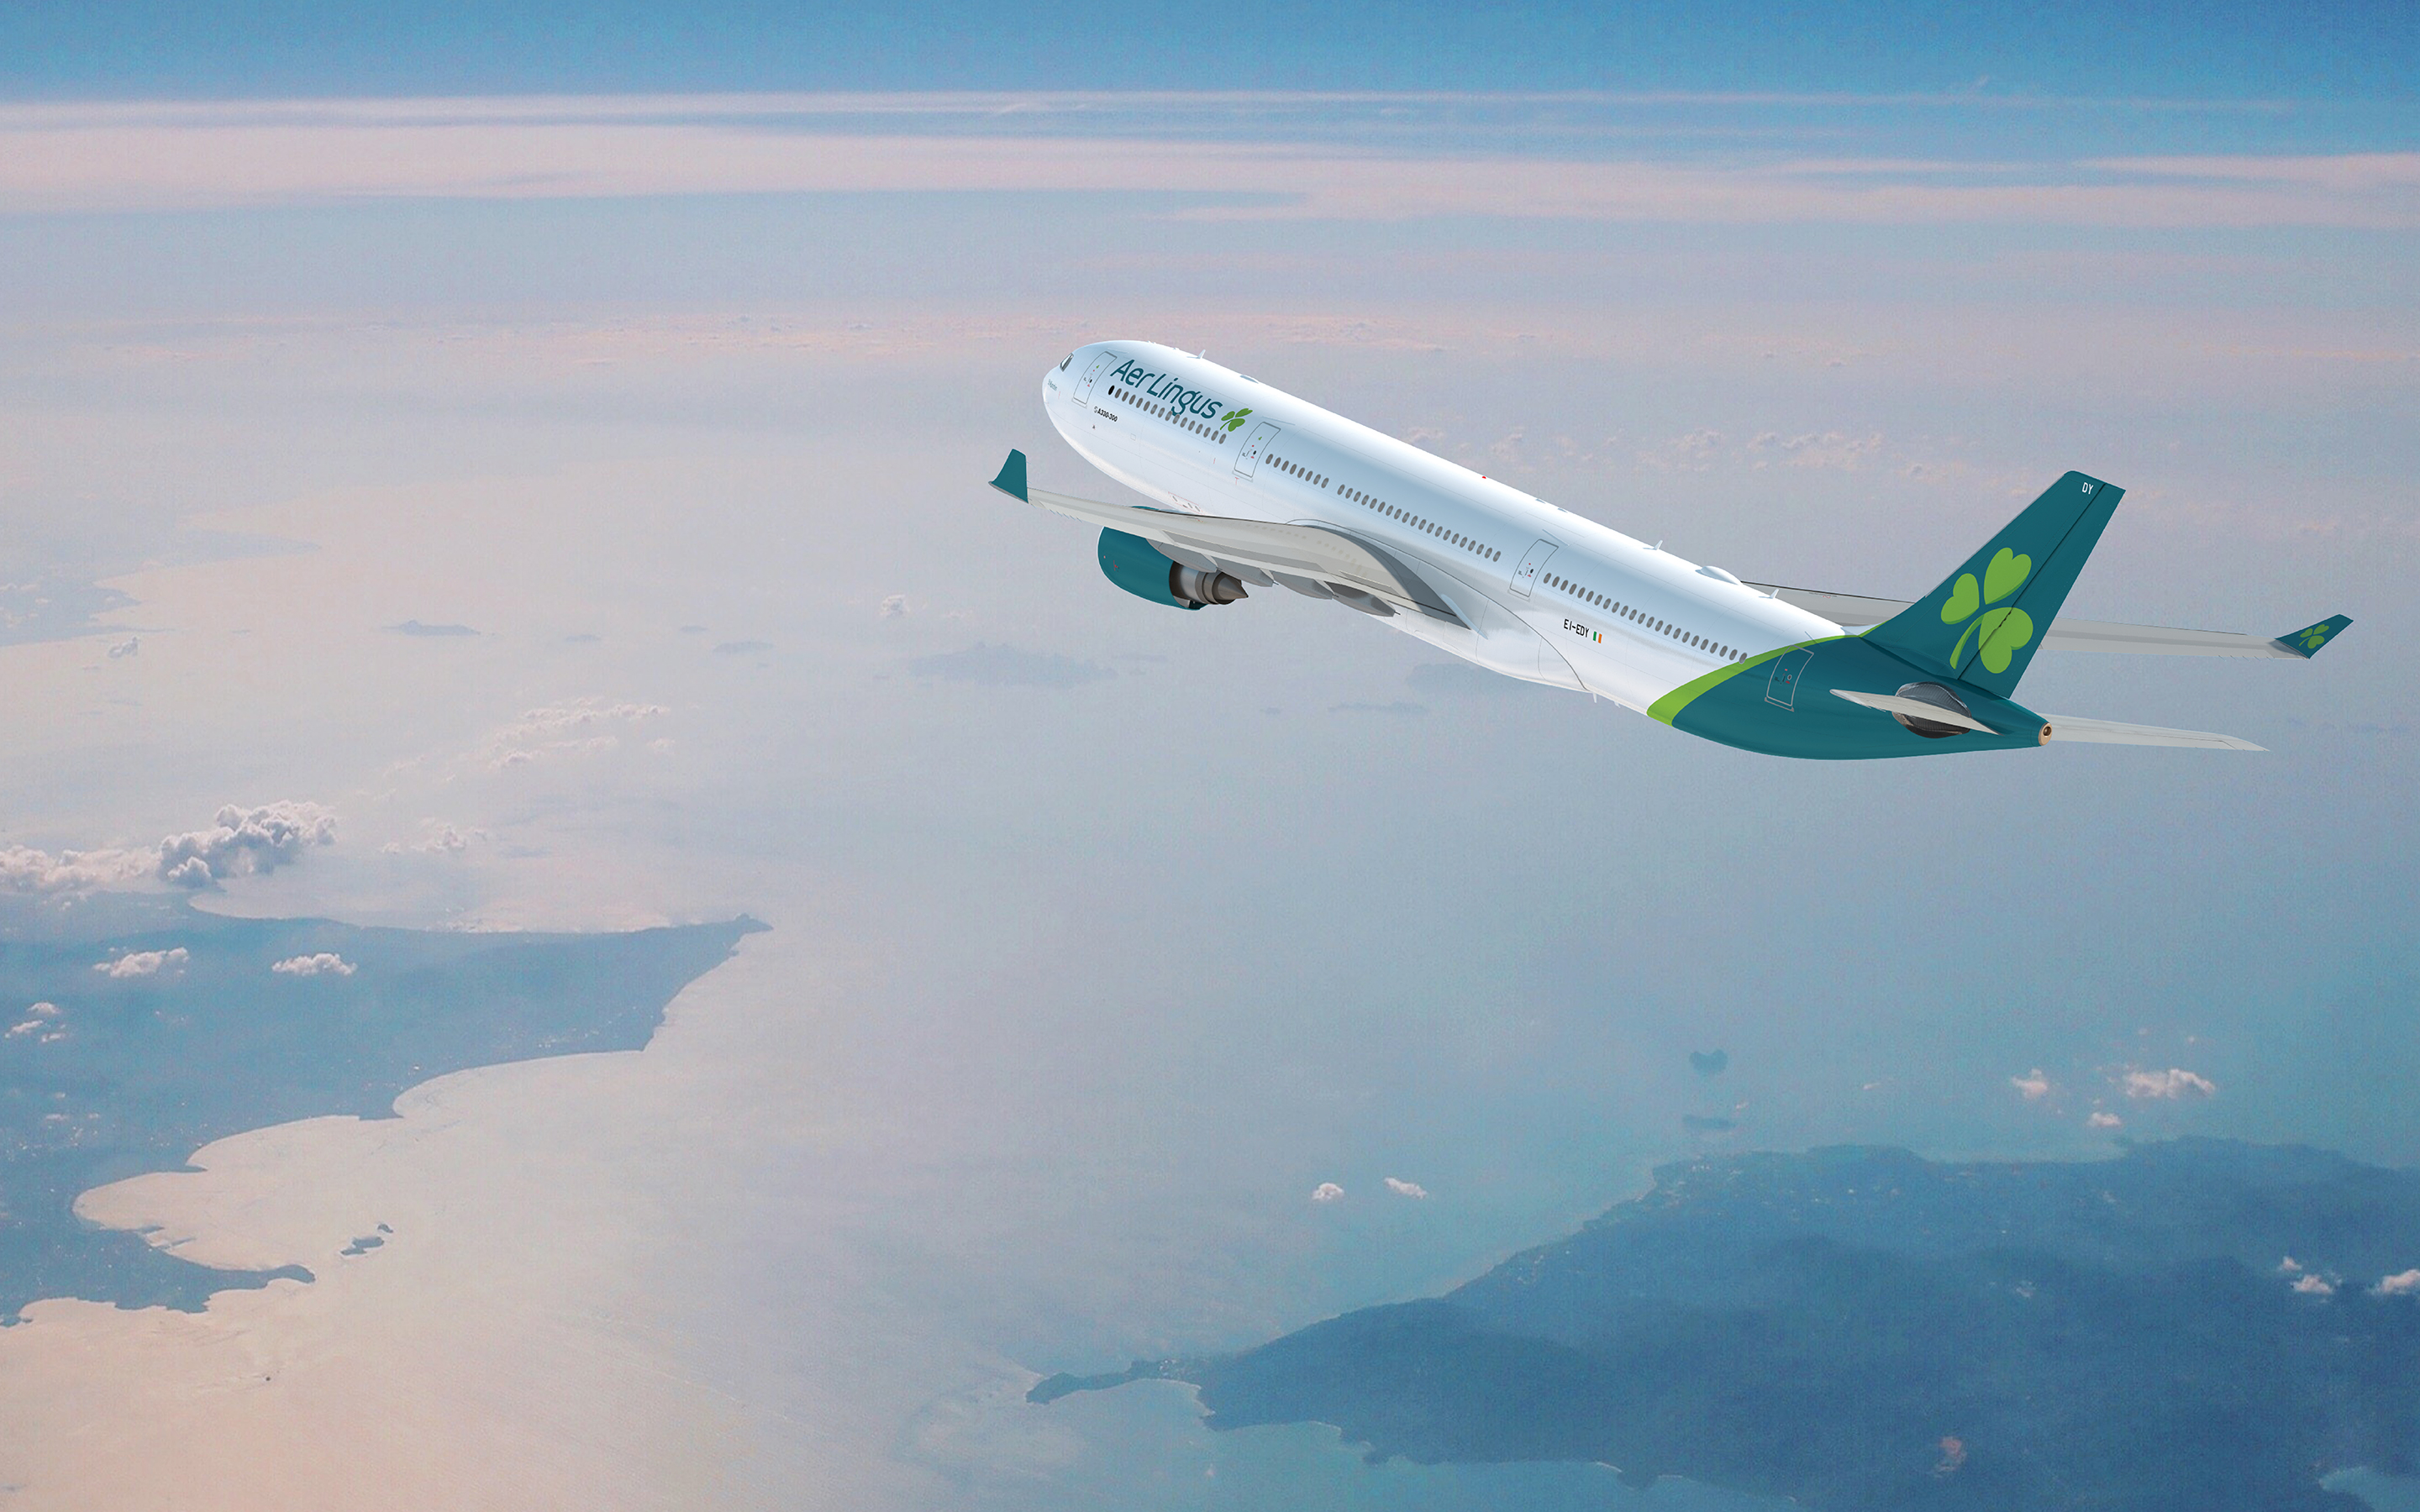 Cover image: Aer Lingus Brand Refresh